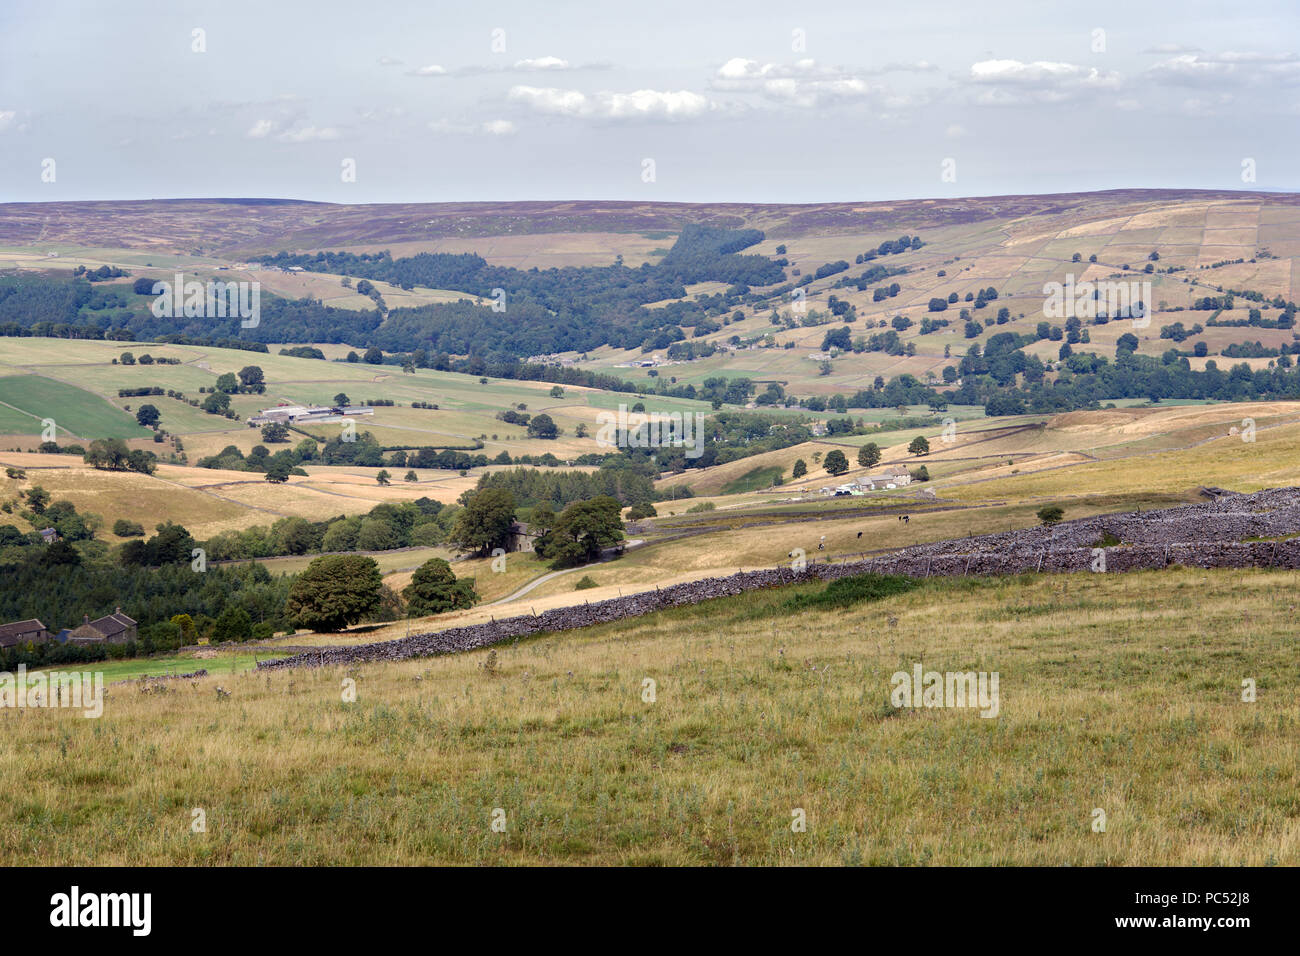 Nidderdale is a major dale or open valley in the Yorkshire Dales. It is an Area of Outstanding Natural Beauty. - Stock Image